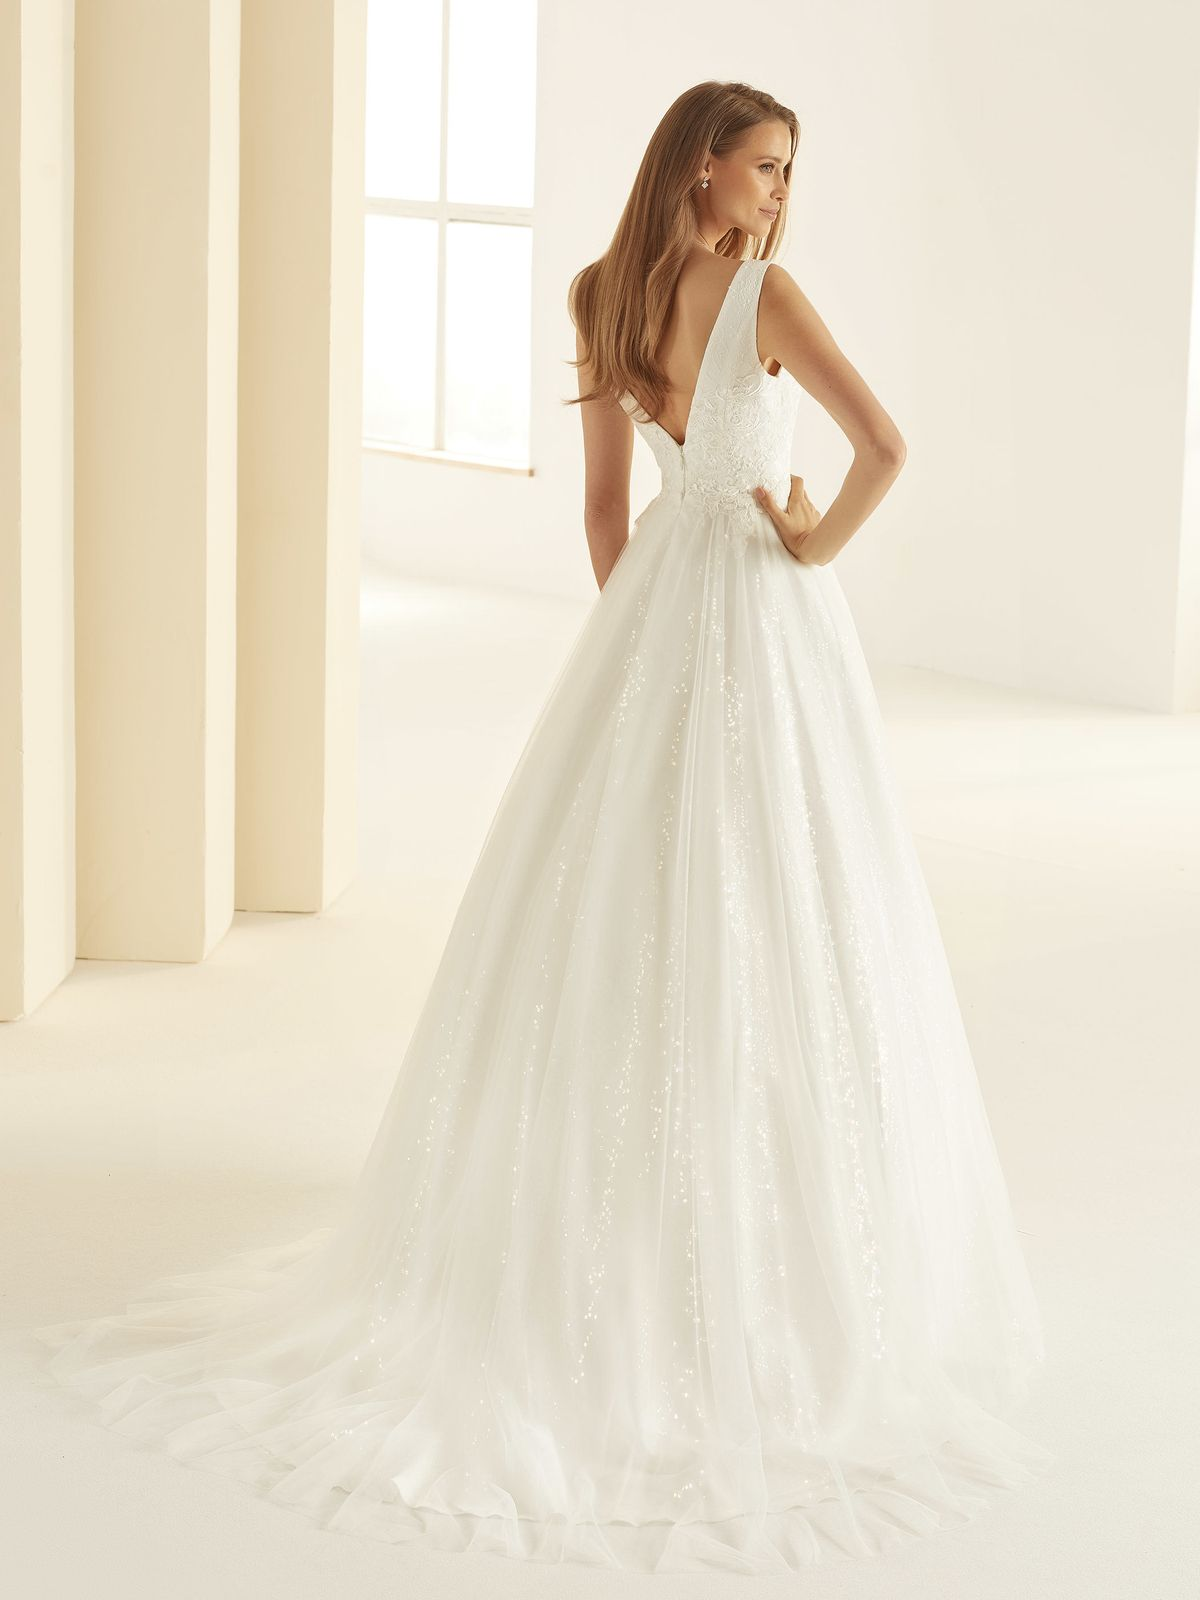 bianco-evento-bridal-dress-larissa-_3__1